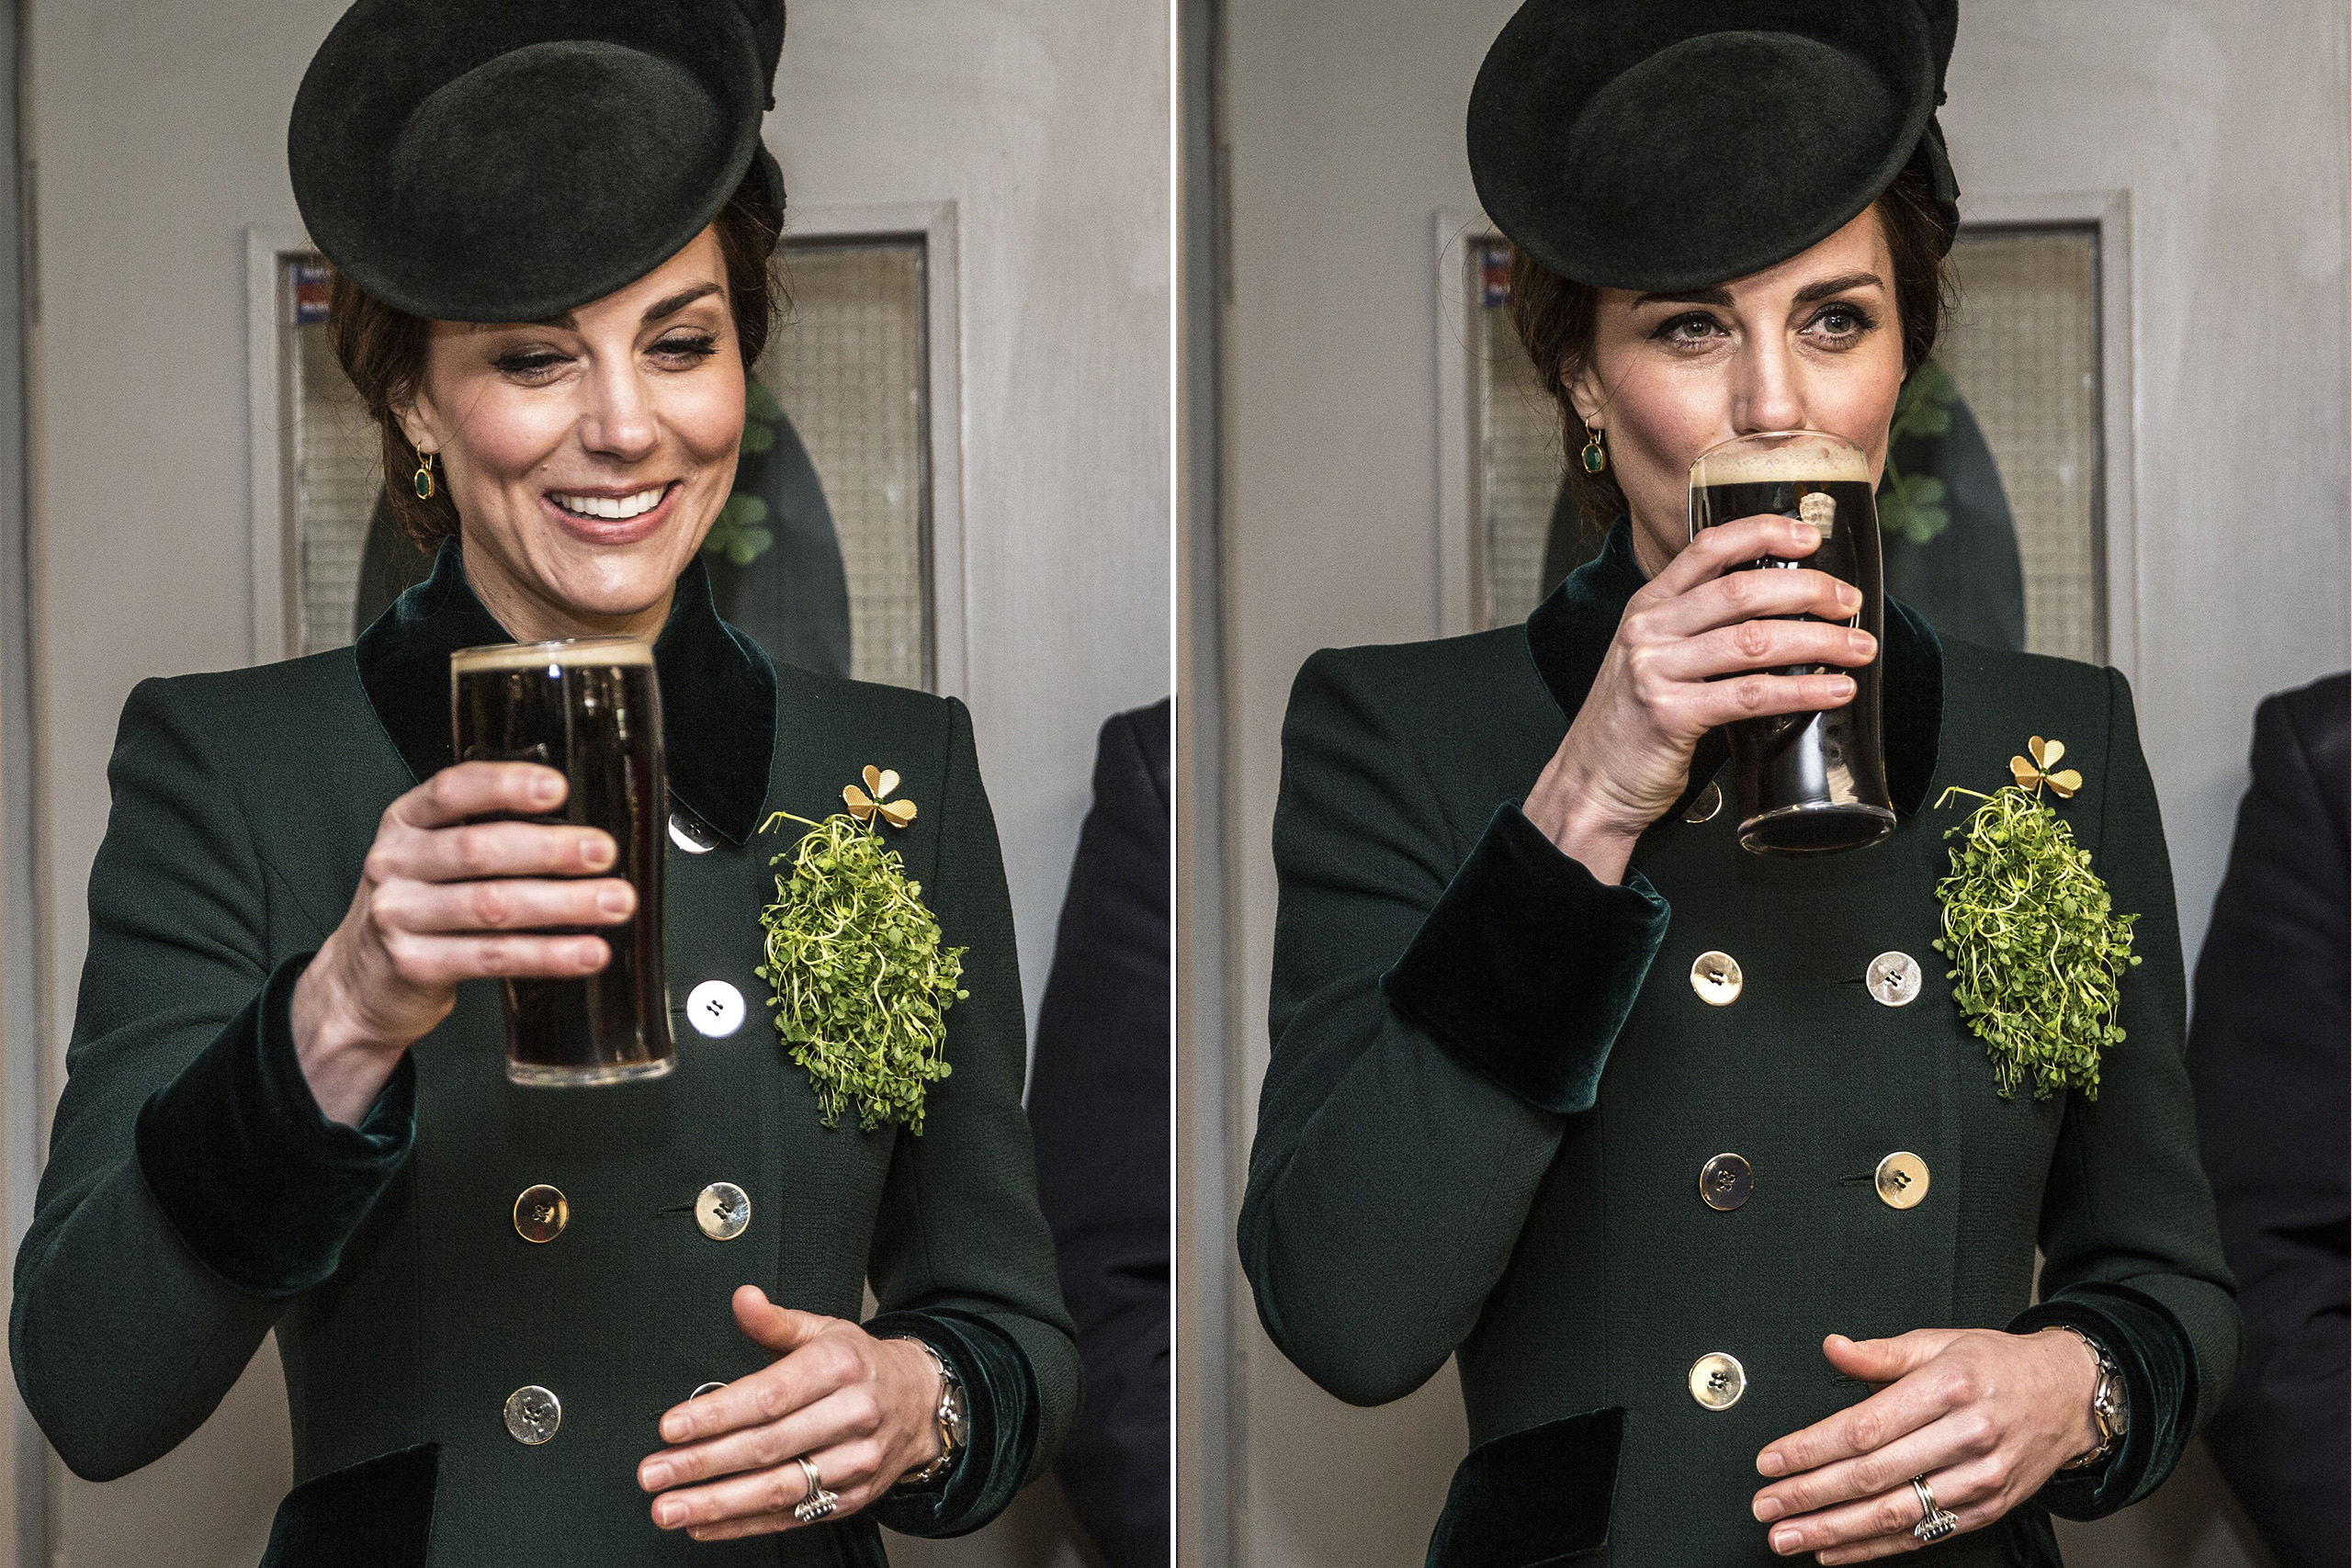 Duchess of Cambridge drinks a pint of Guinness during a meet and greet with soldiers of the 1st Battalion Irish Guards in their canteen following their St. Patrick's Day parade at Cavalry Barracks, Hounslow, on March 17, 2017.